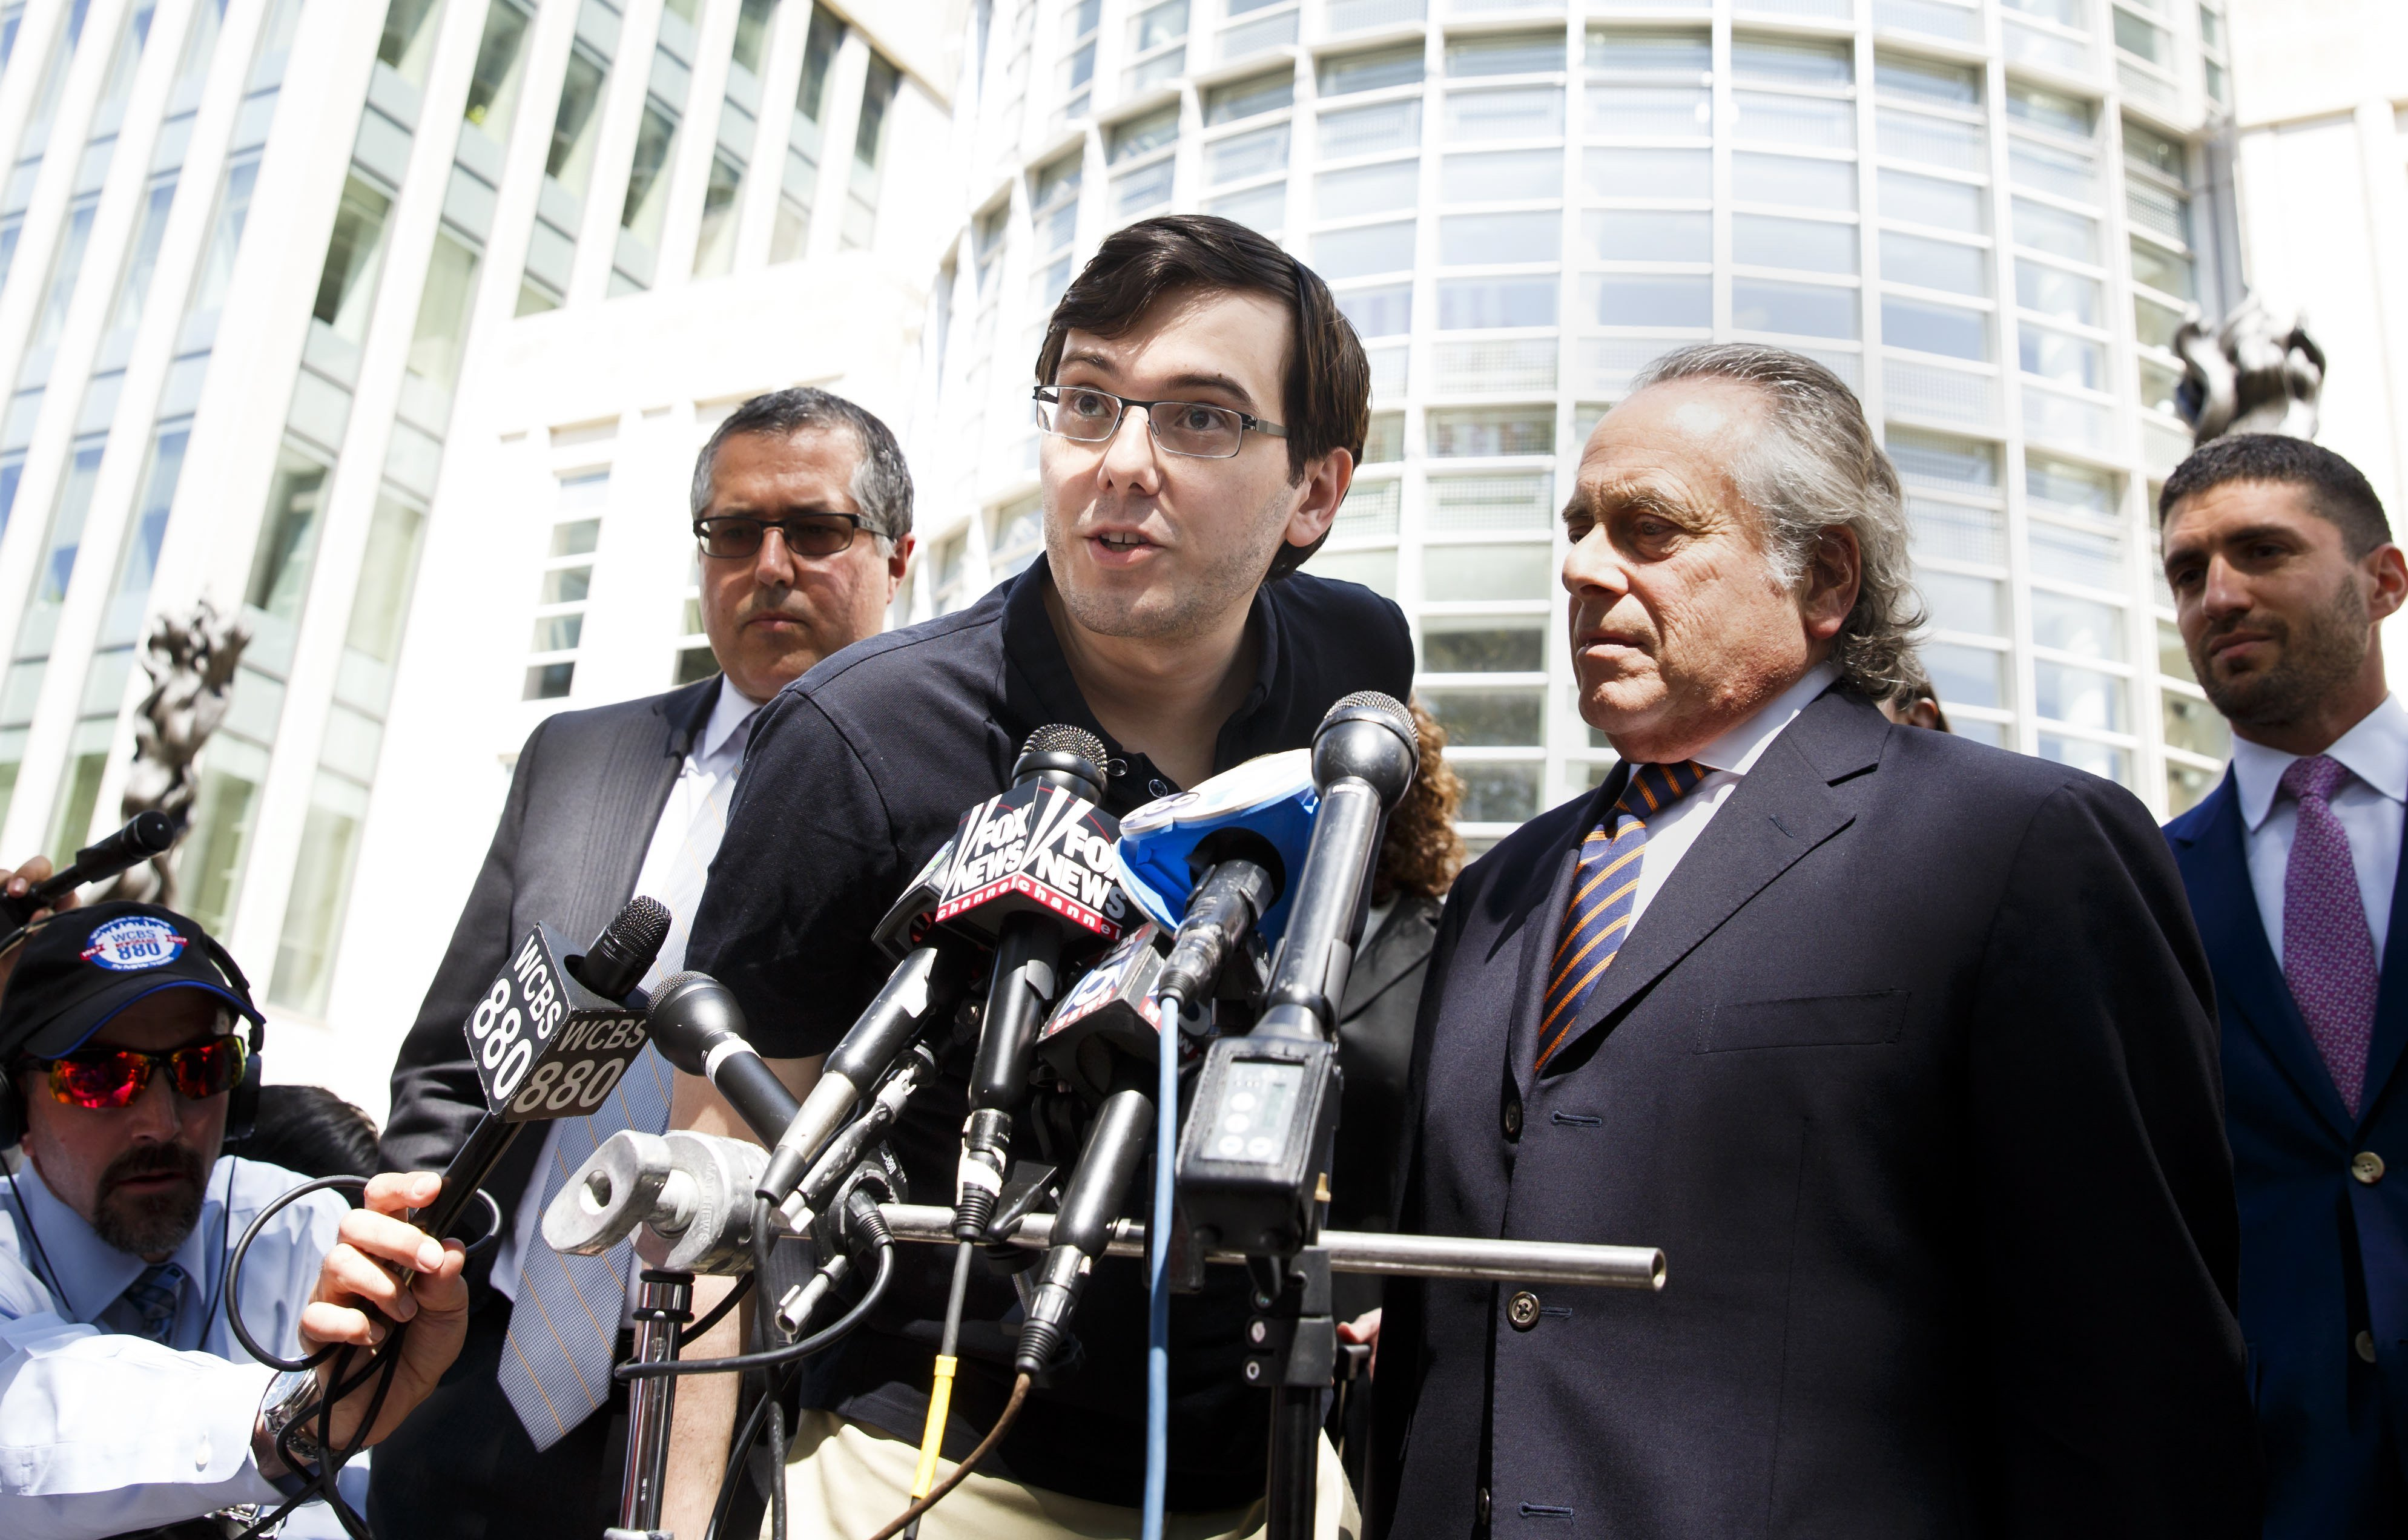 Image: Former Turing Pharmaceutical CEO Martin Shkreli Convicted of Fraud